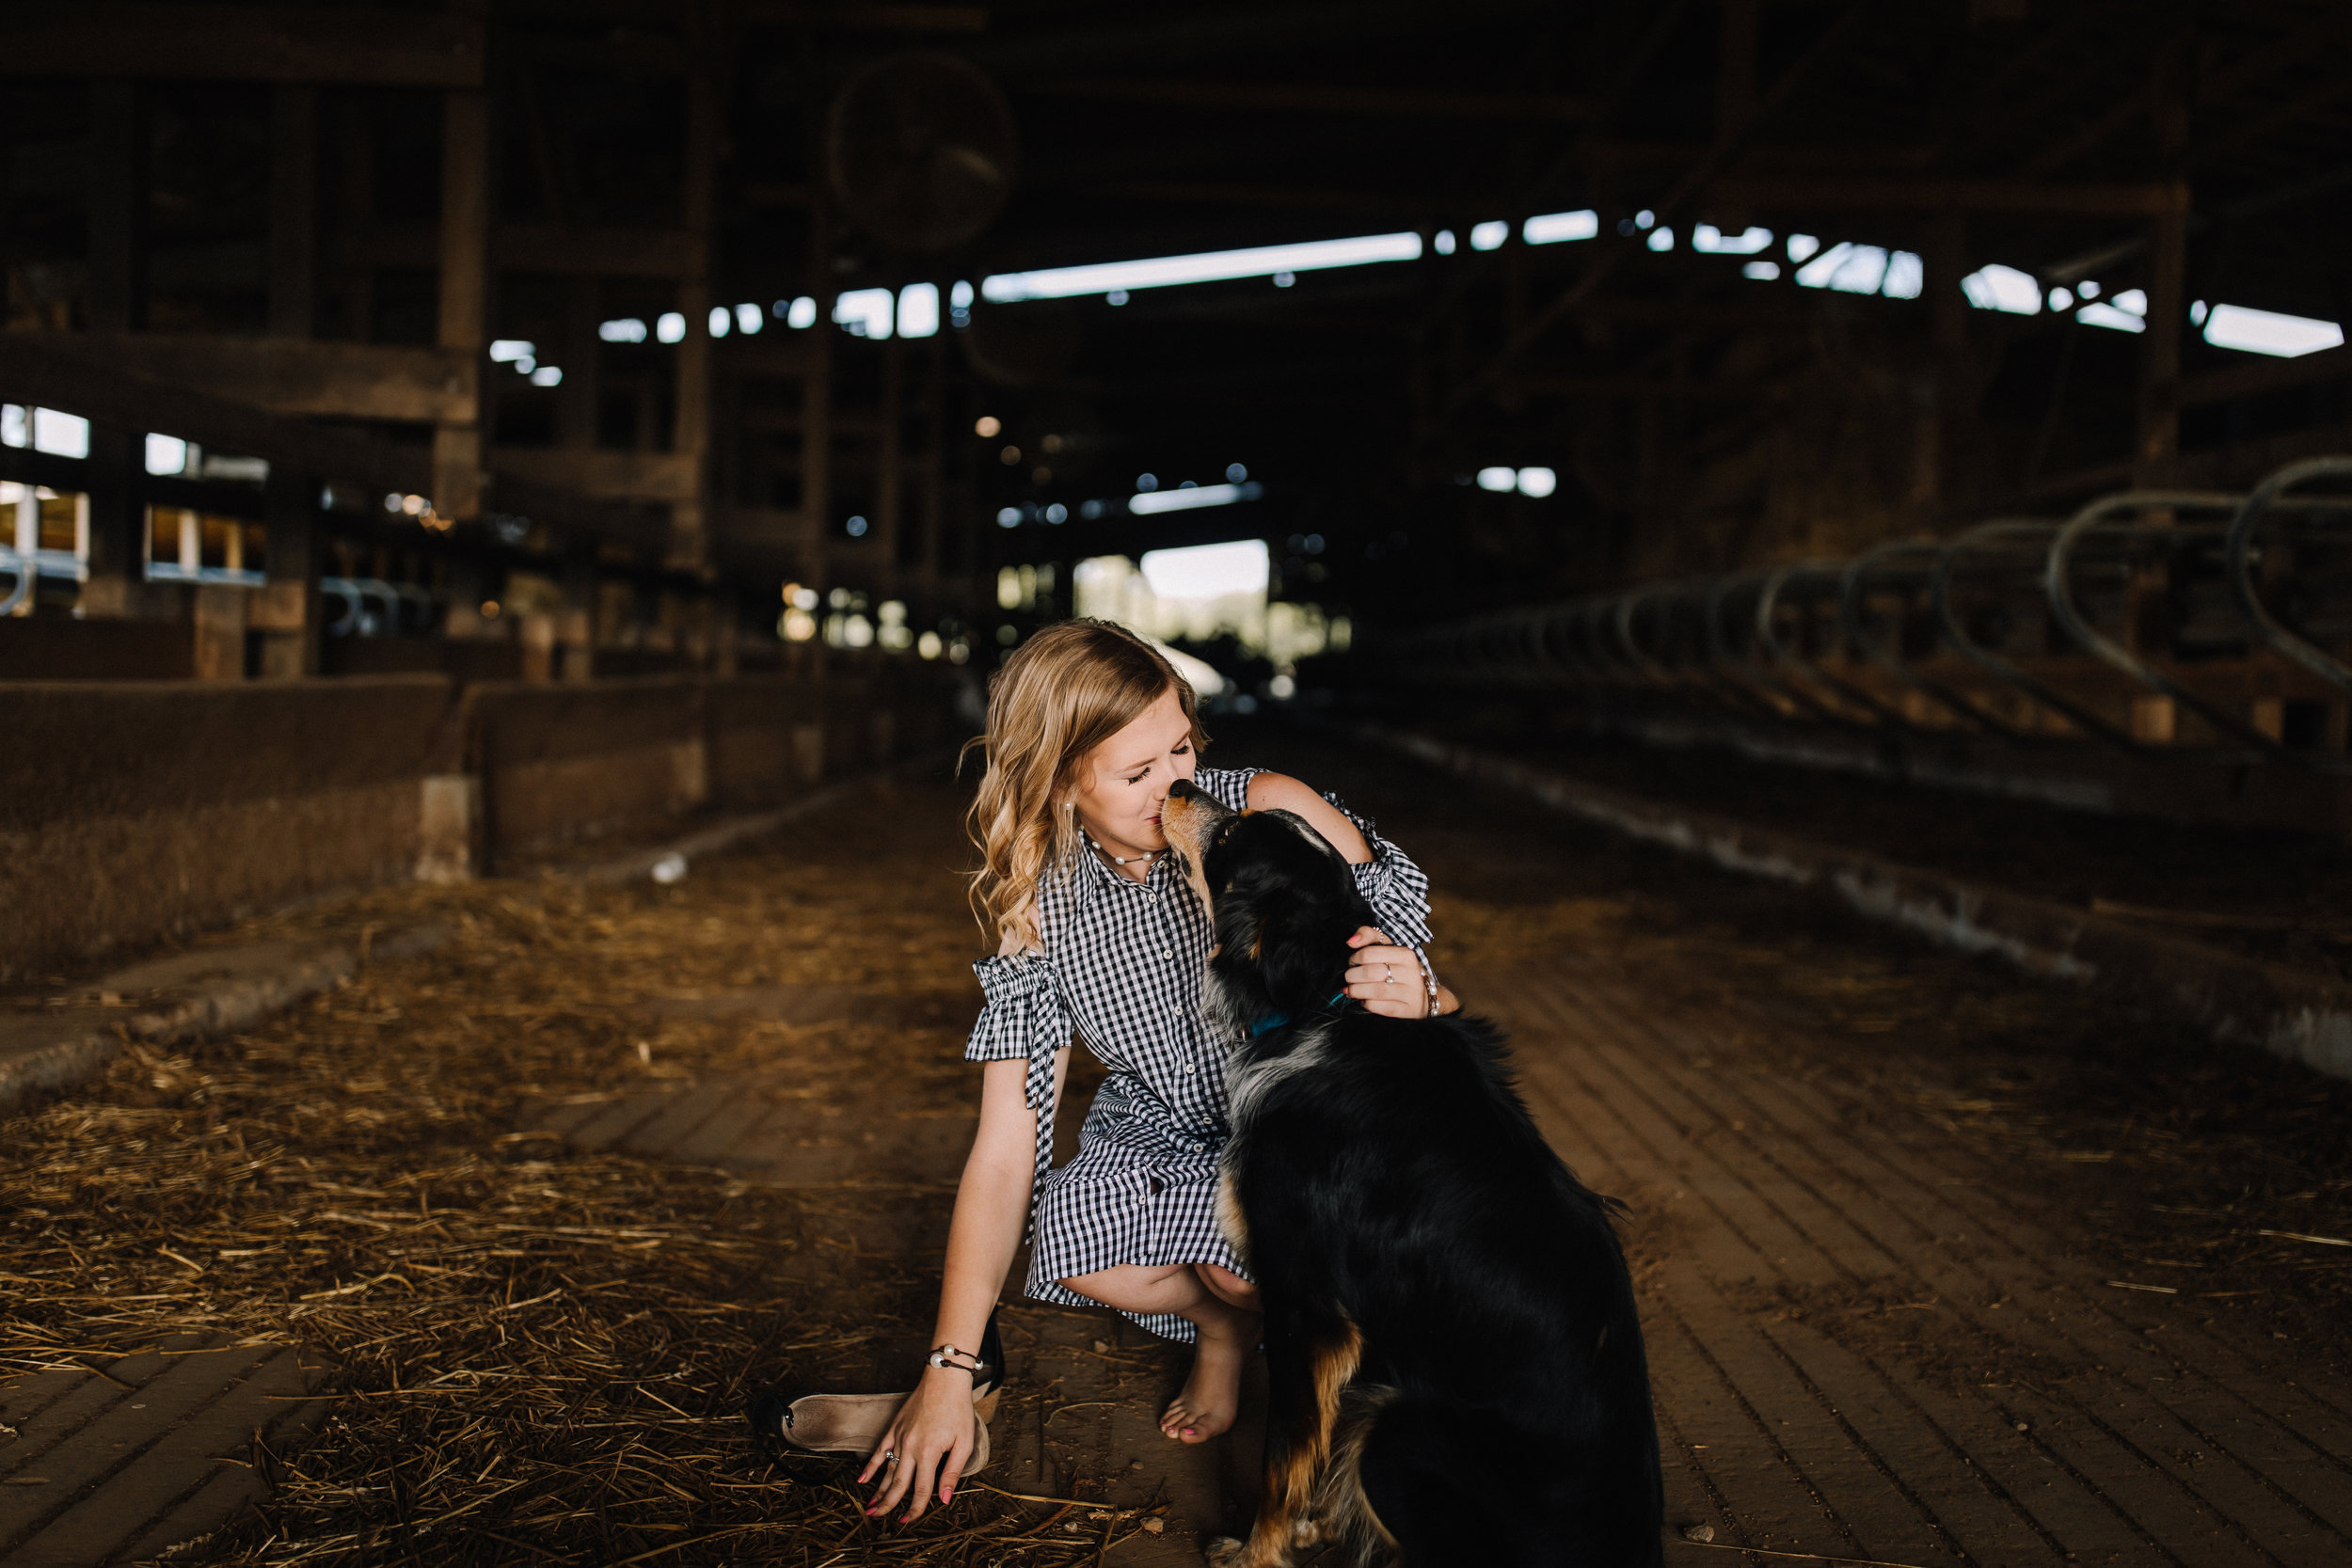 billie-shaye style photography - www.billieshayestyle.com - class of 2019 - senior portrait experience - country farm creek crop land - nashville tennessee-3617.jpg